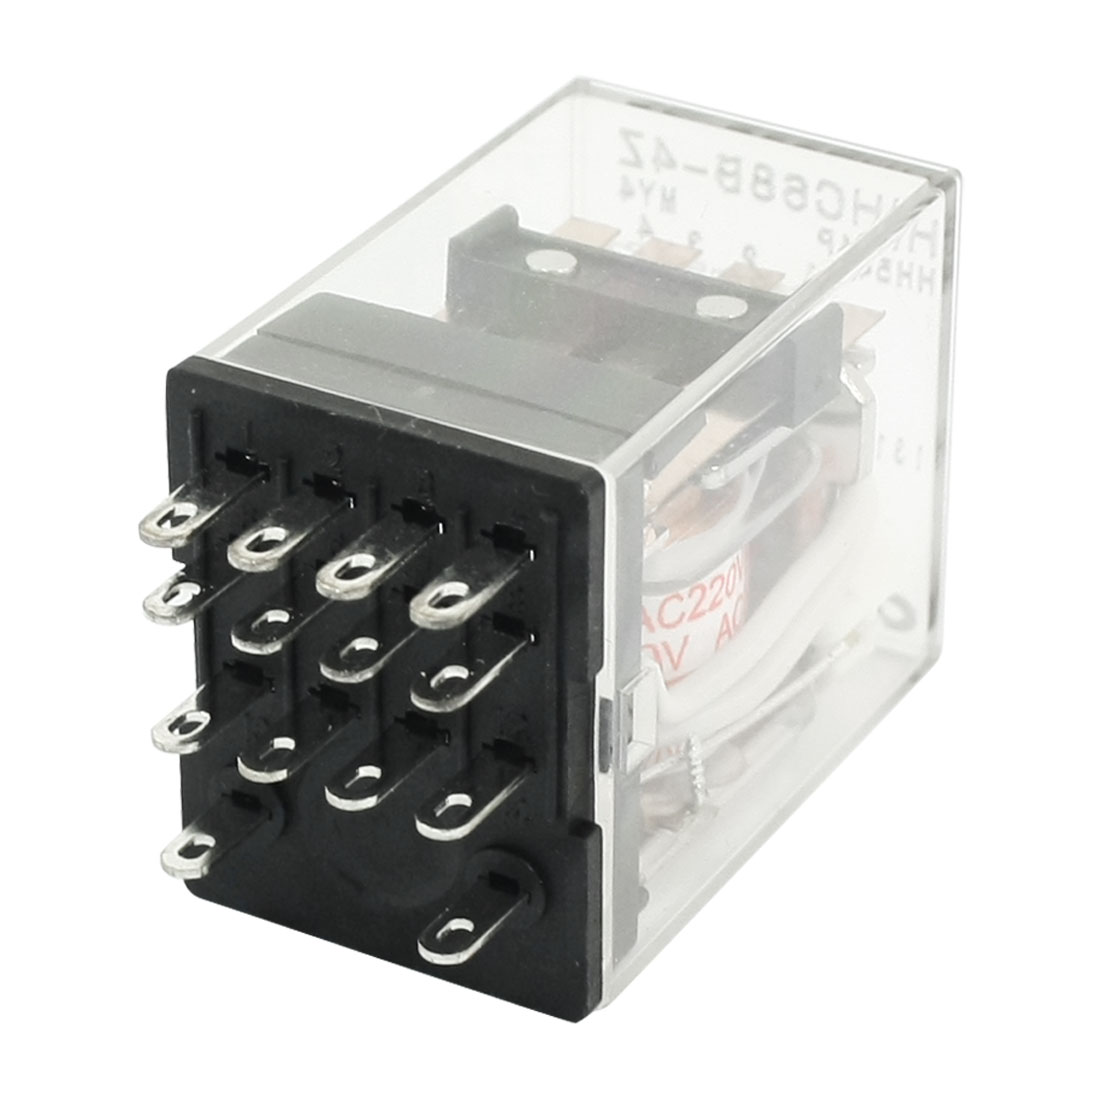 AC220V Coil Red LED Indicator Light 14Pin 4PDT Plug in Type Clear Plastic Case Power Relay HHC68B-4Z